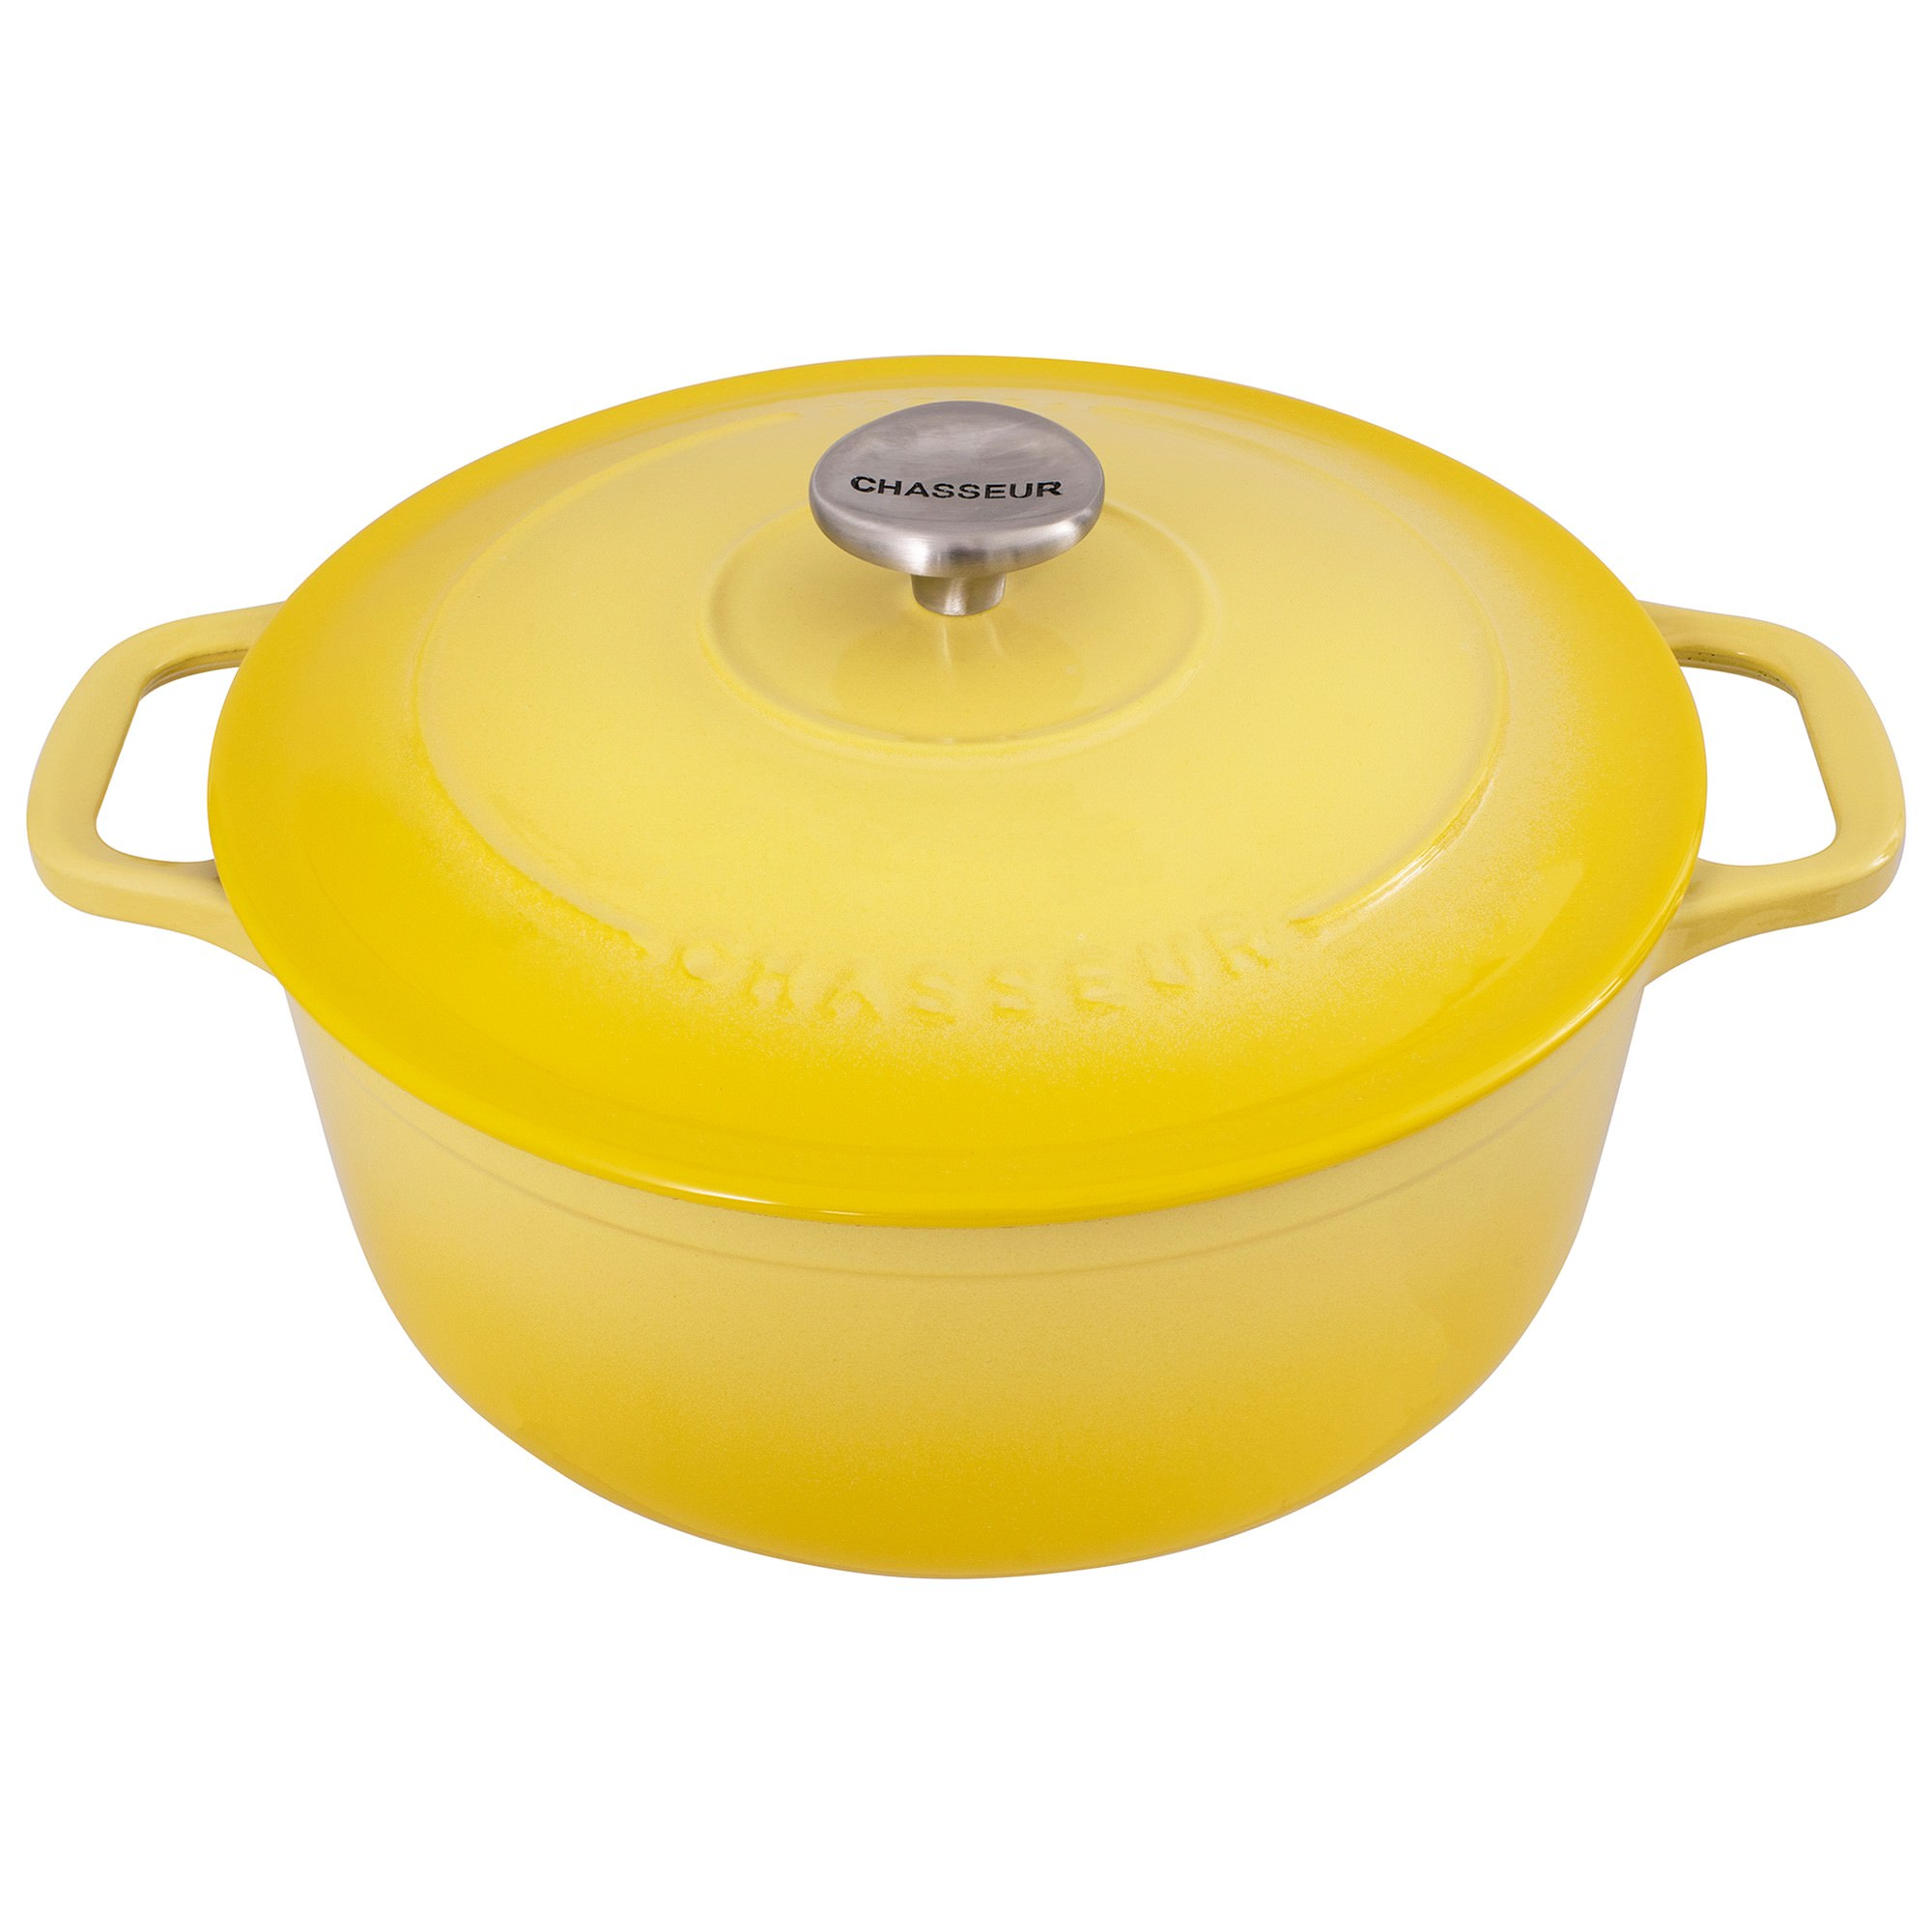 Chasseur Cast Iron Round French Oven, 28cm, Lemon Yellow